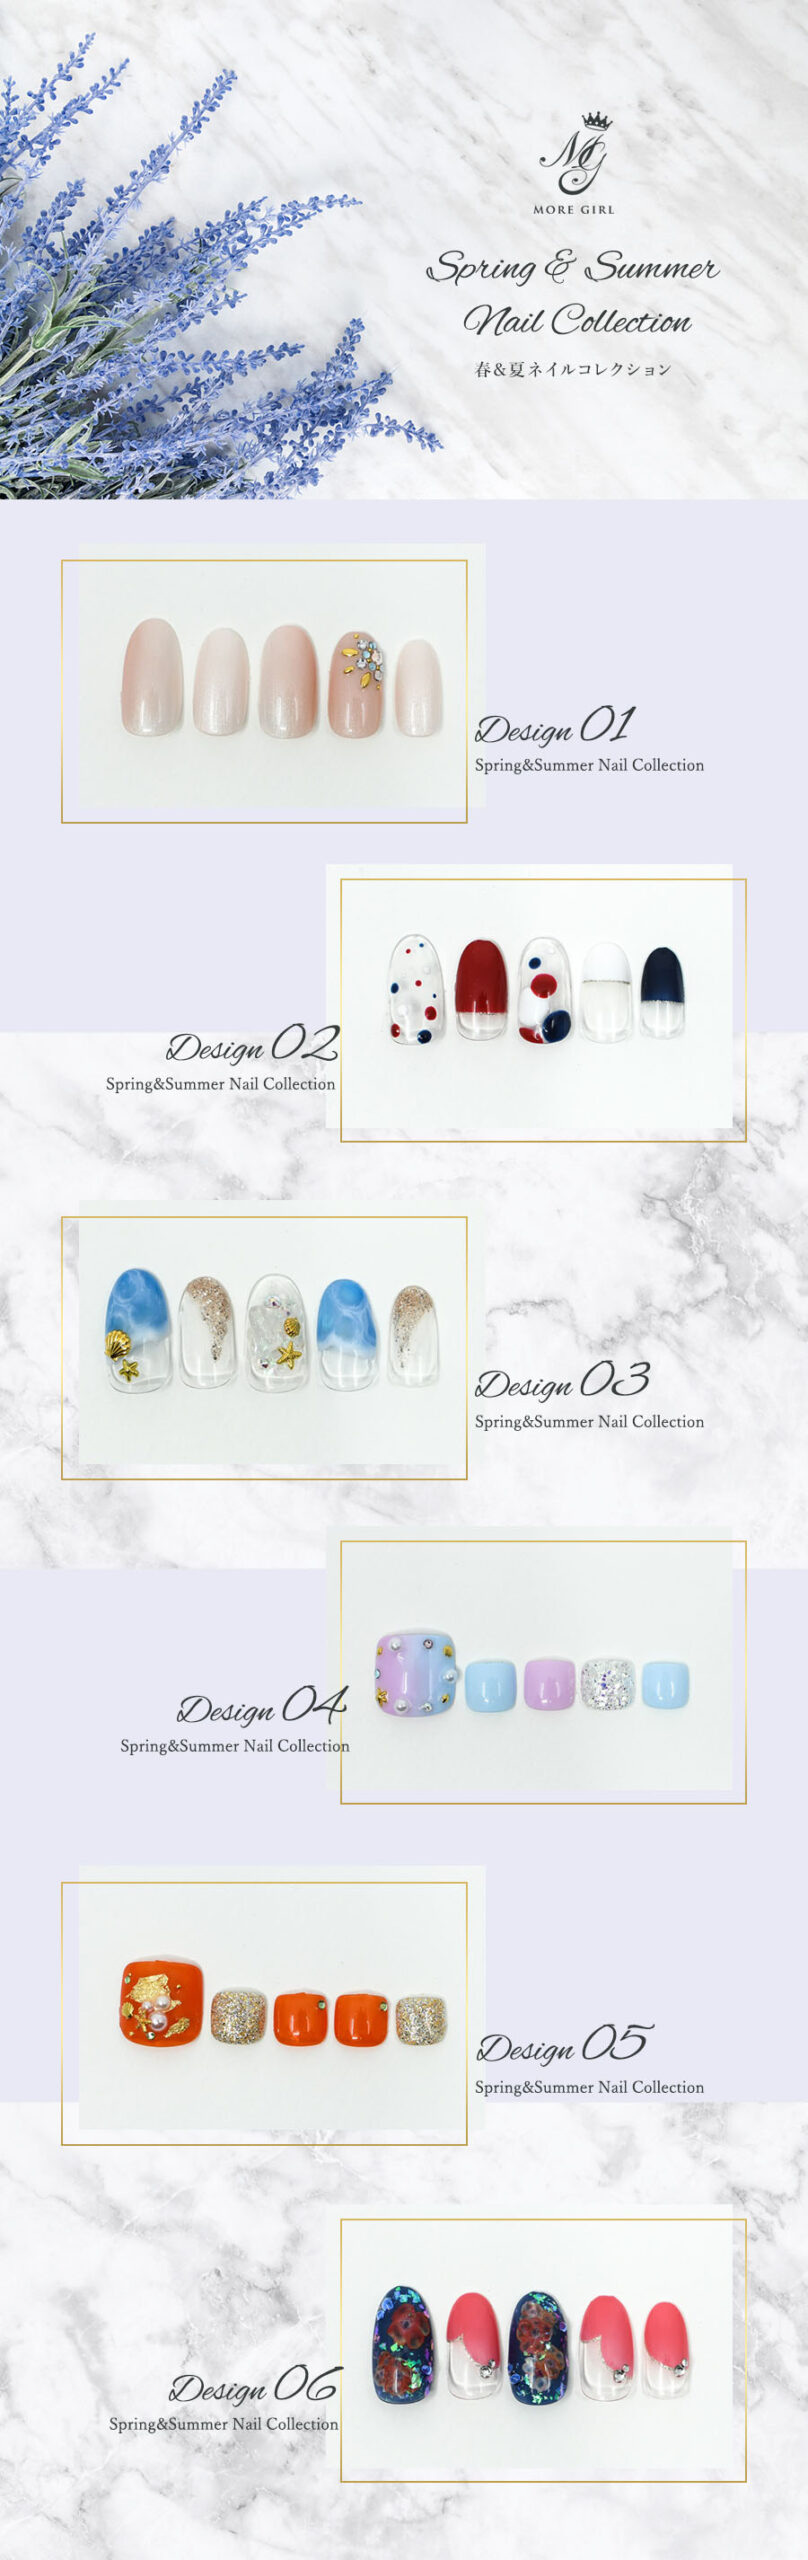 Spring&Summer Nail Collection